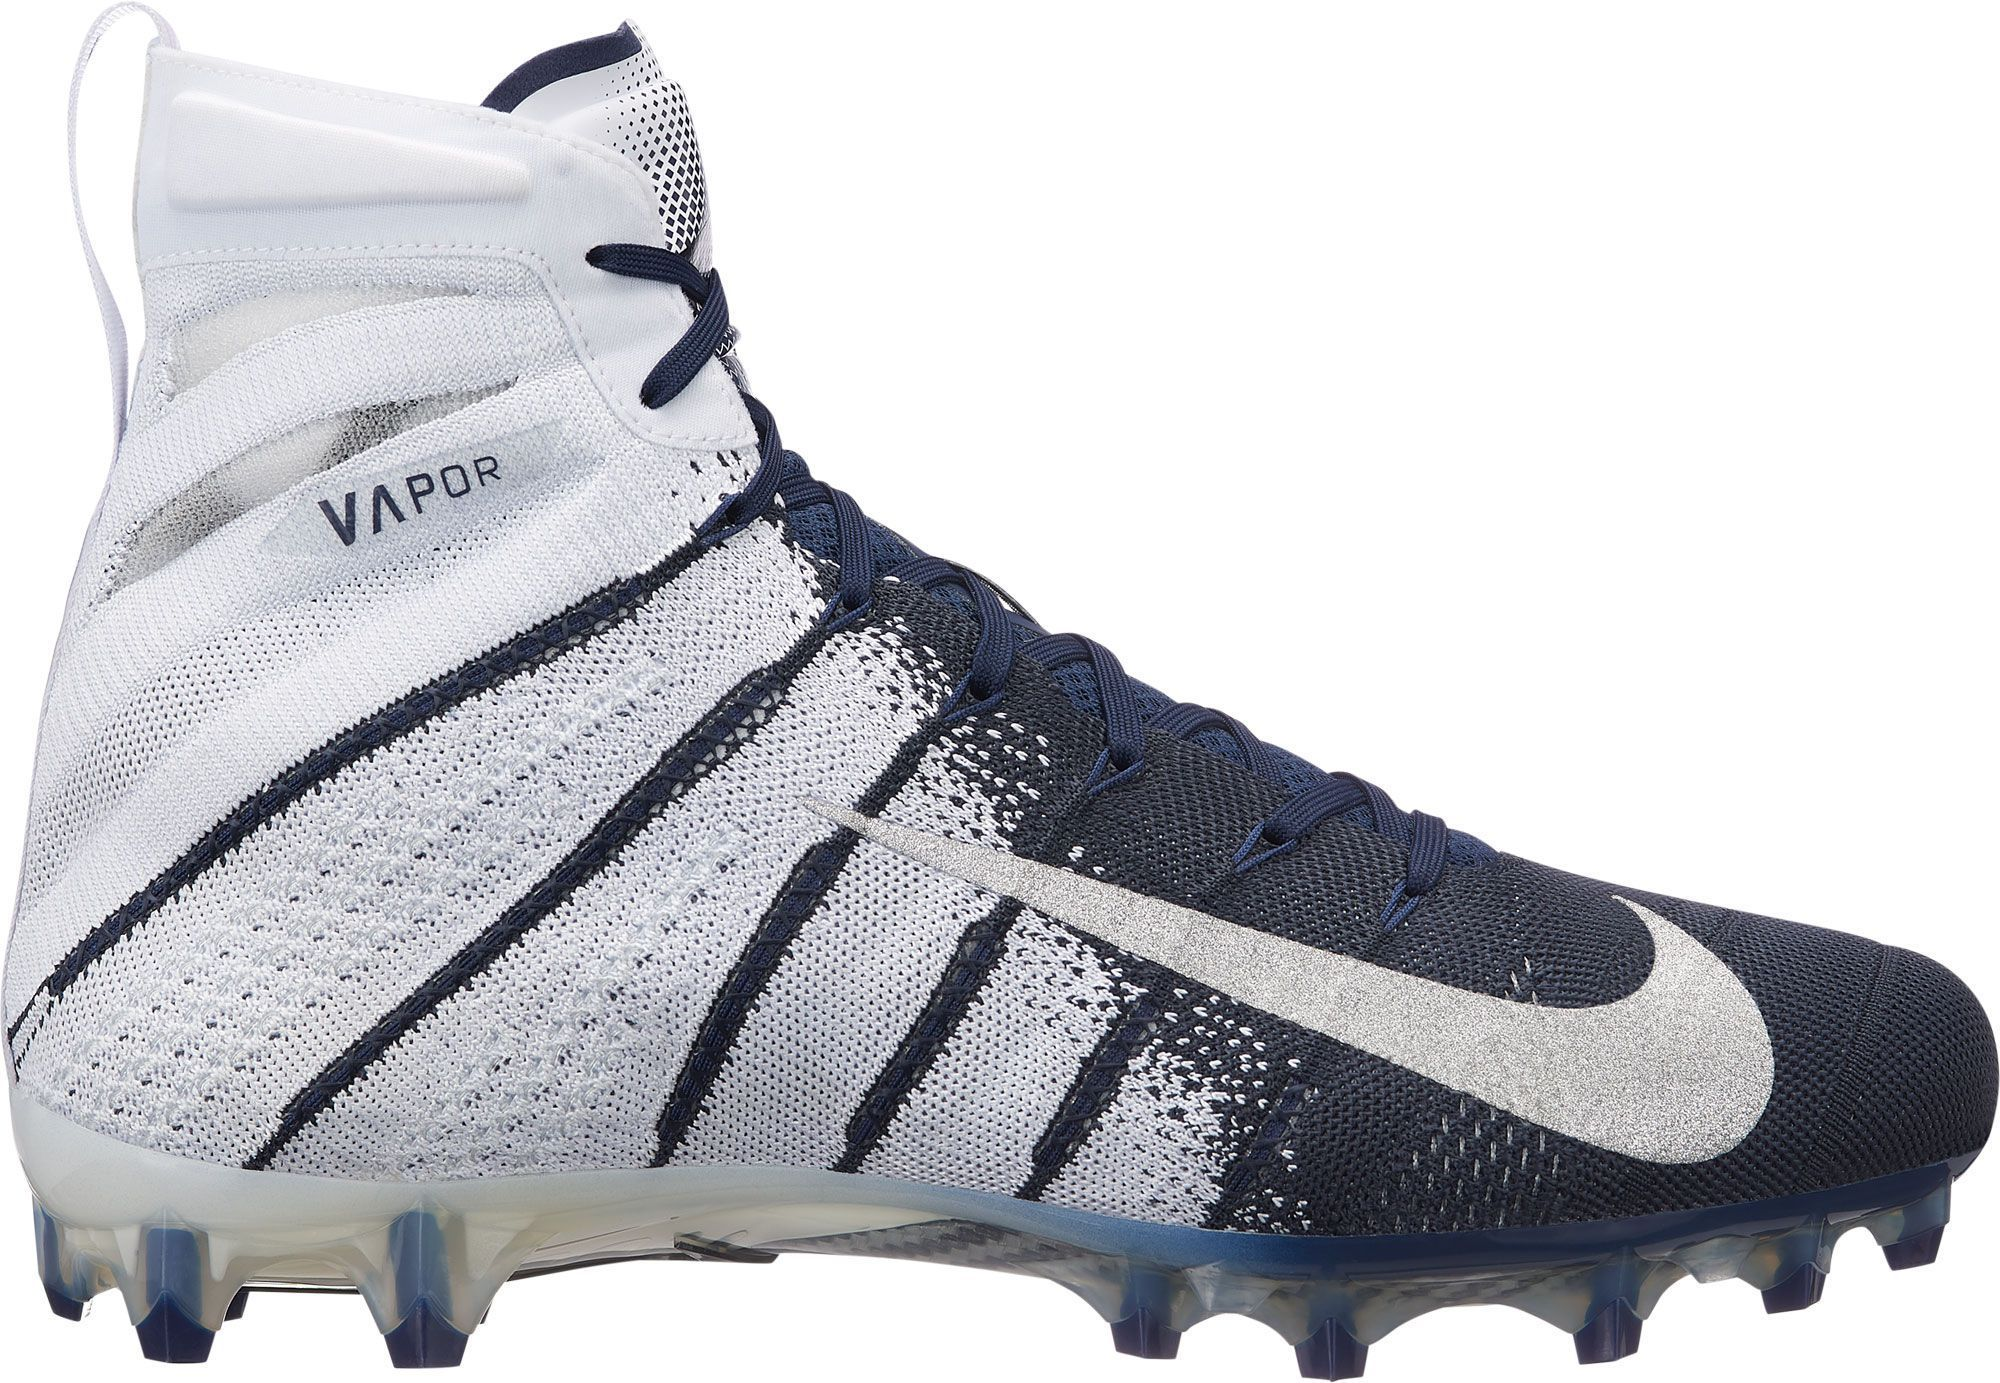 new arrival fe527 9538b Nike Men s Vapor Untouchable 3 Elite Football Cleats, White